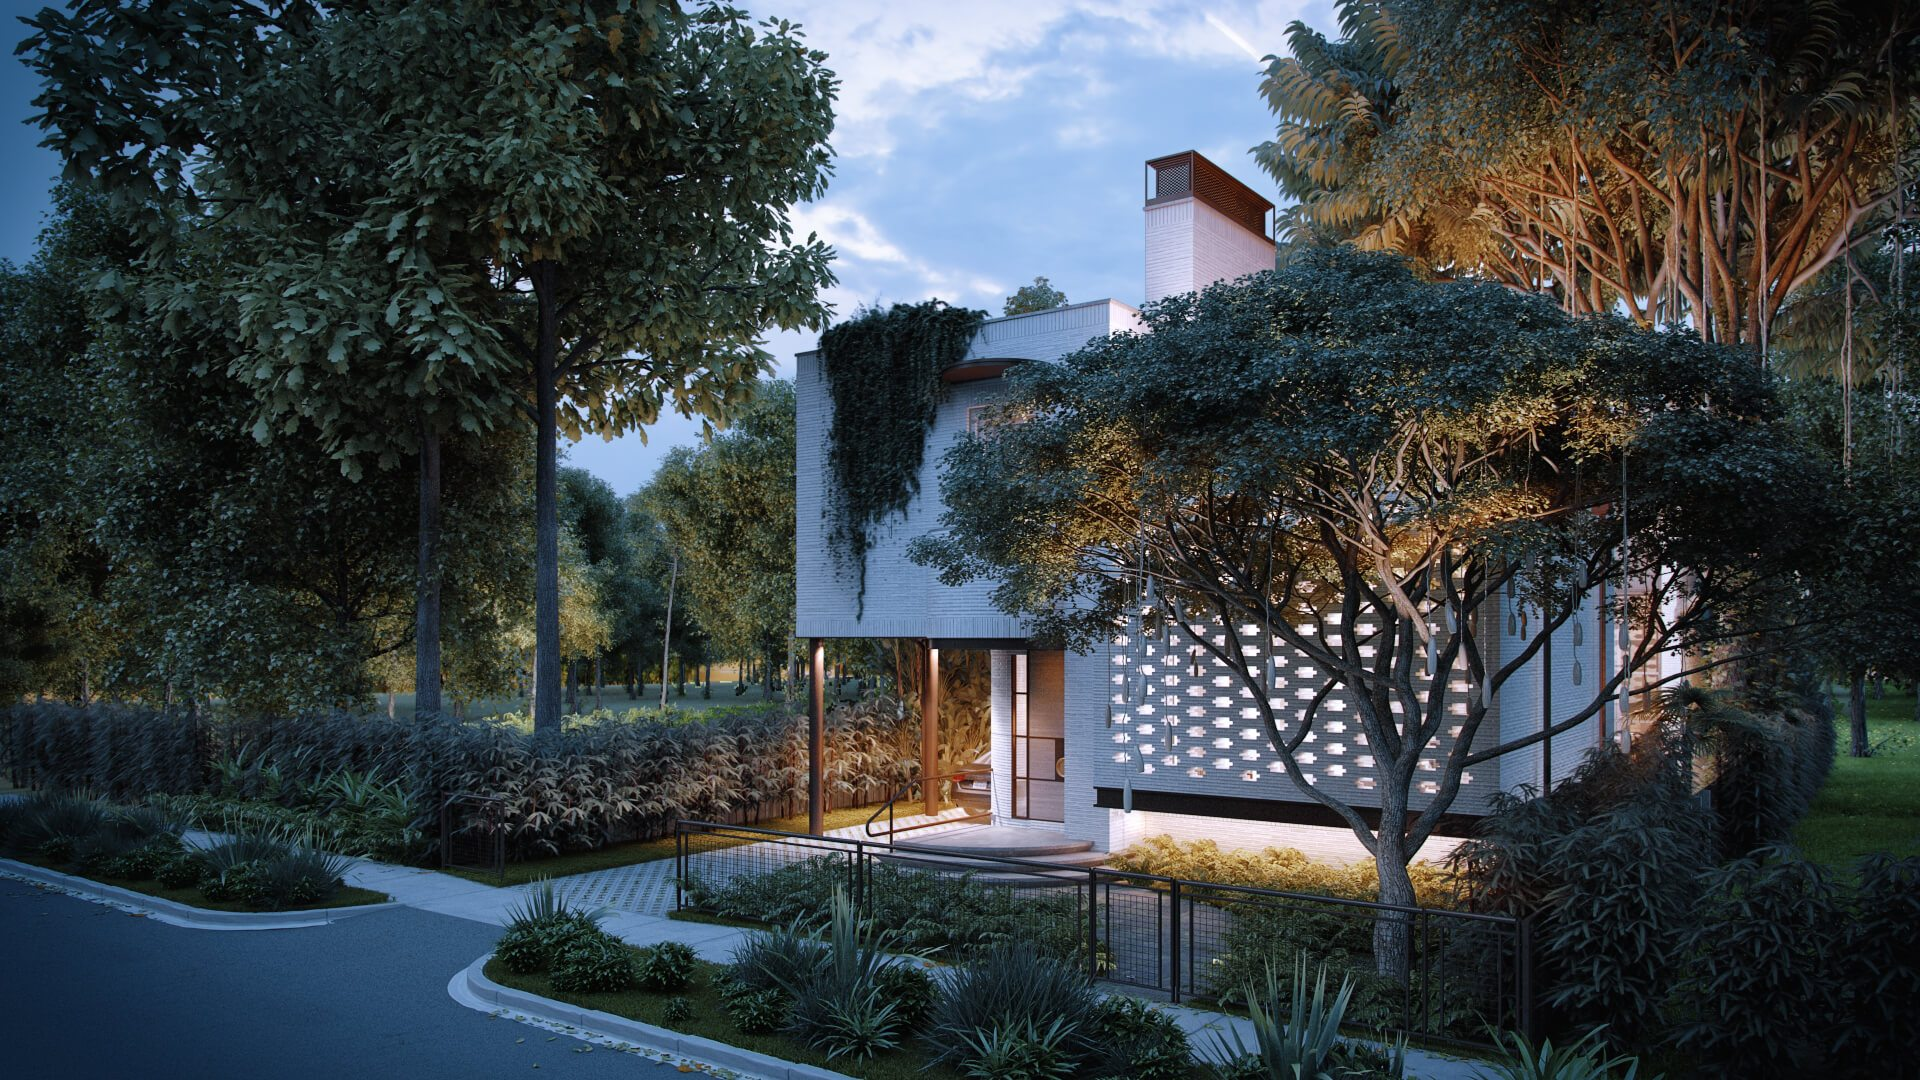 Architectural 3D Rendering of a House in the Evening